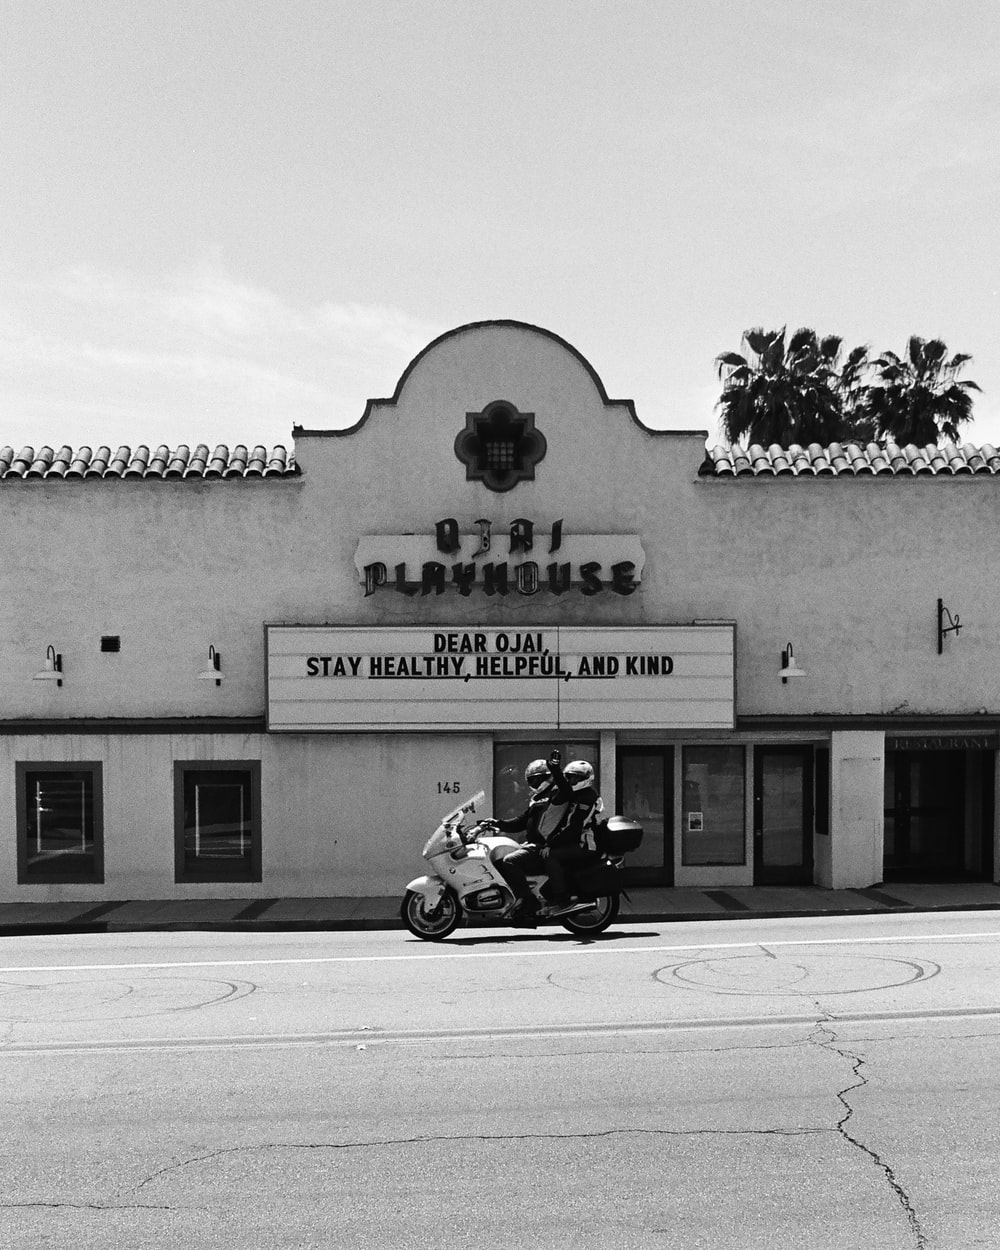 grayscale photo of man riding motorcycle in front of UNKs building